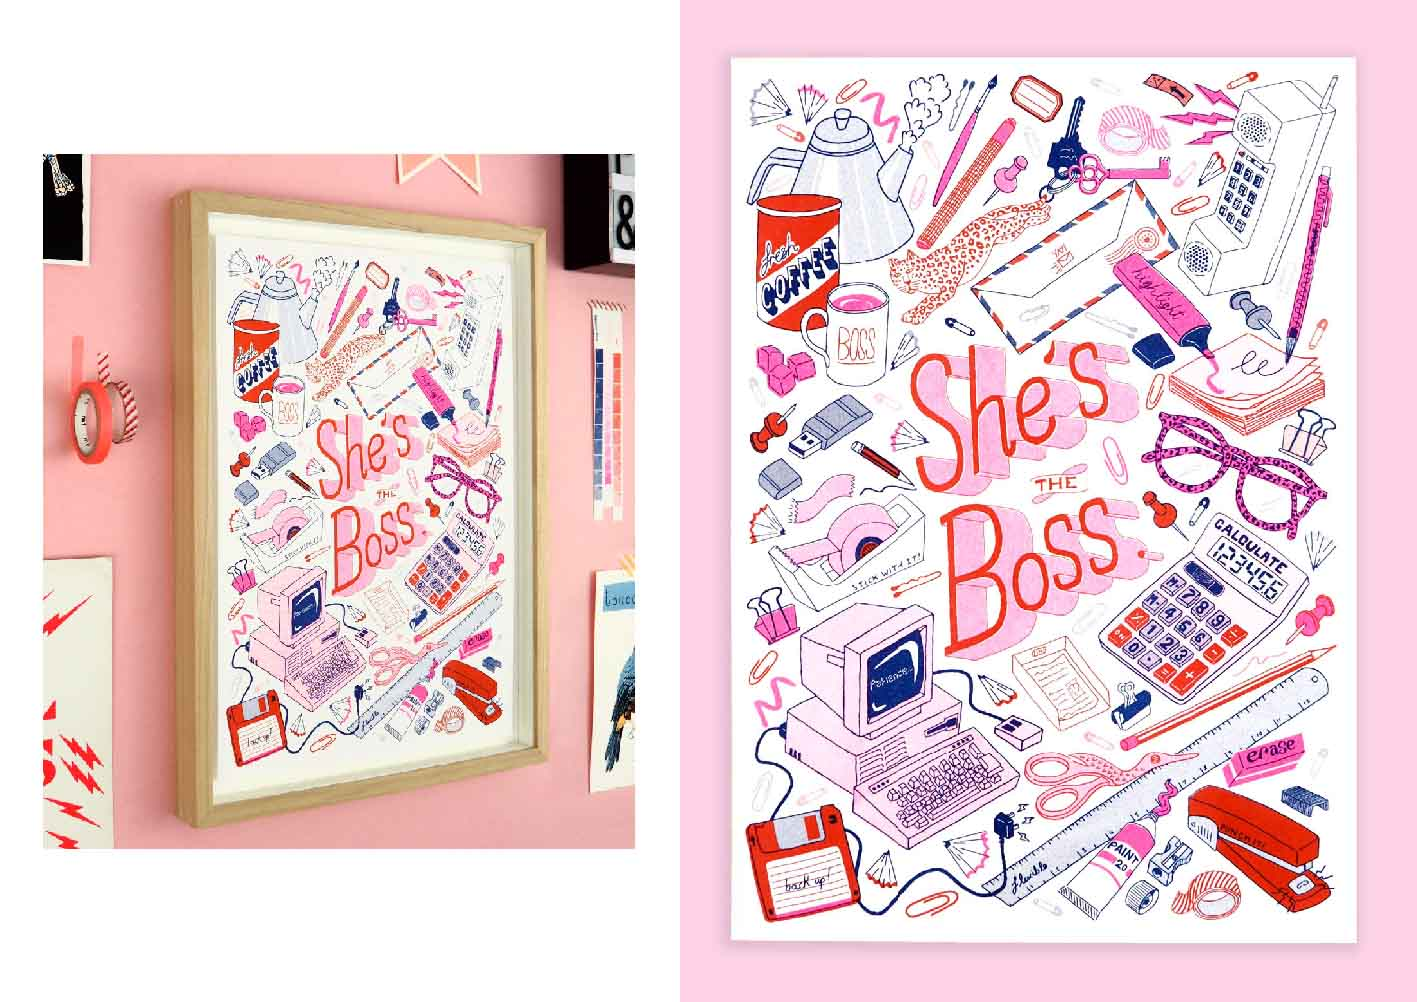 She's-The-Boss-Riso-Print-1.jpg